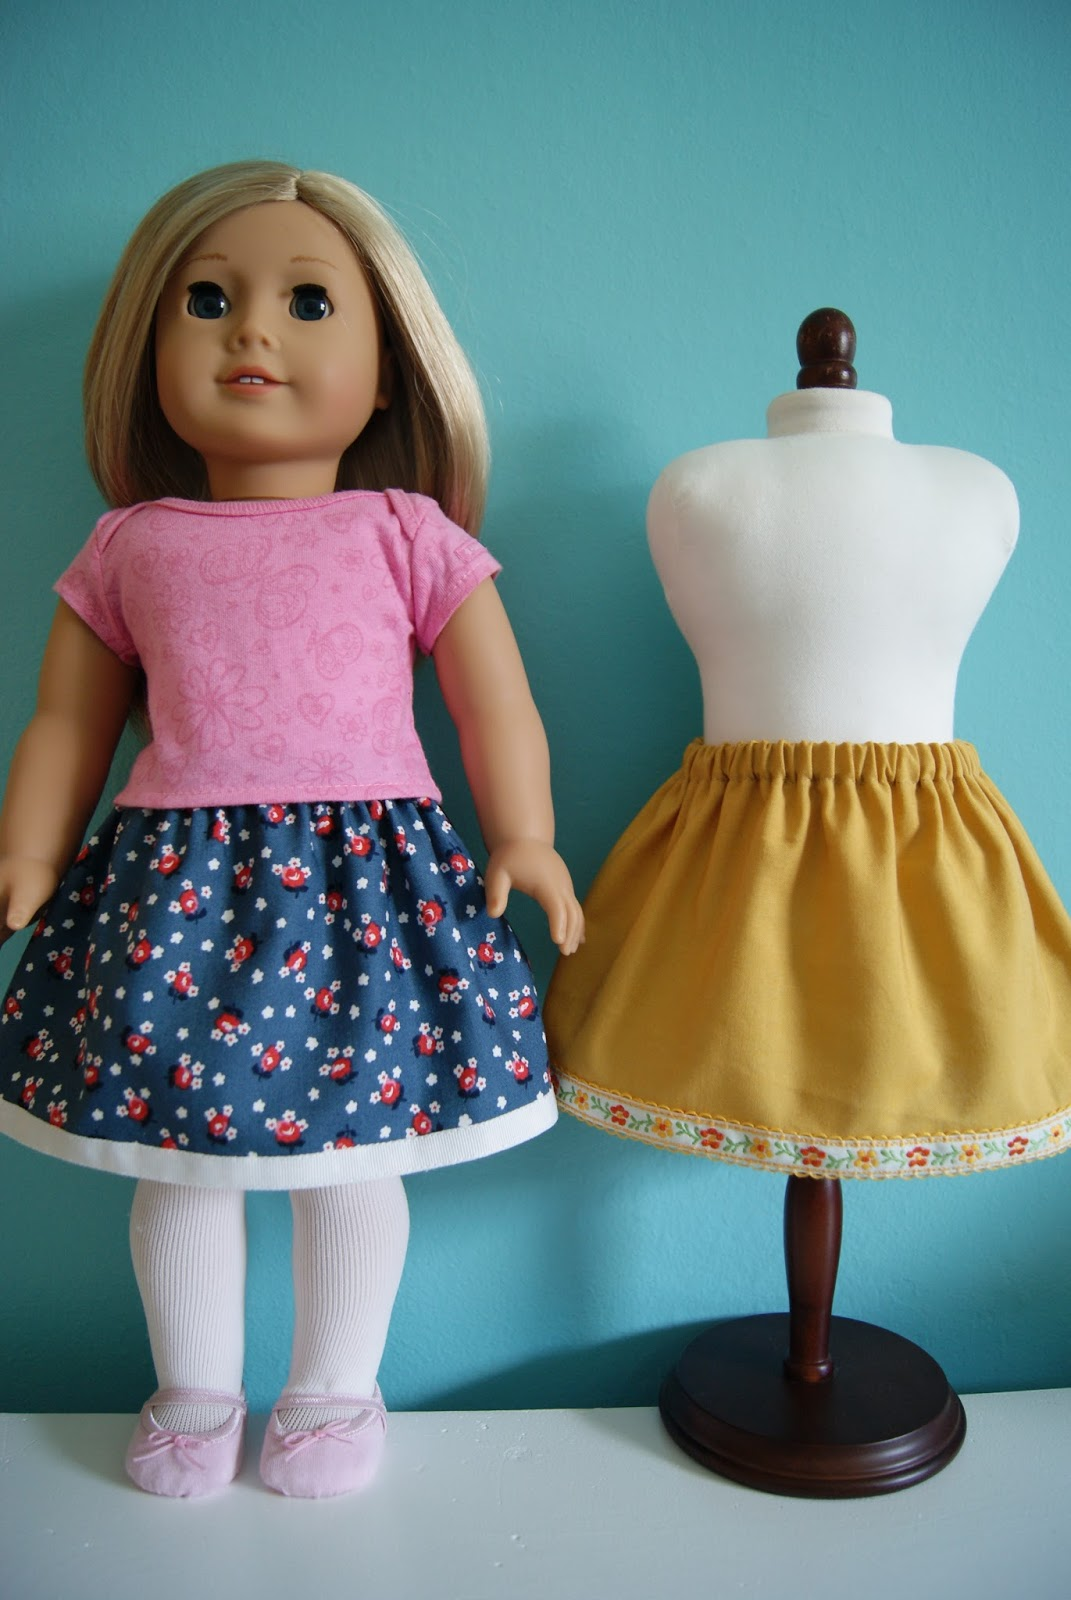 18-inch doll elastic-waist skirts by nest full of eggs